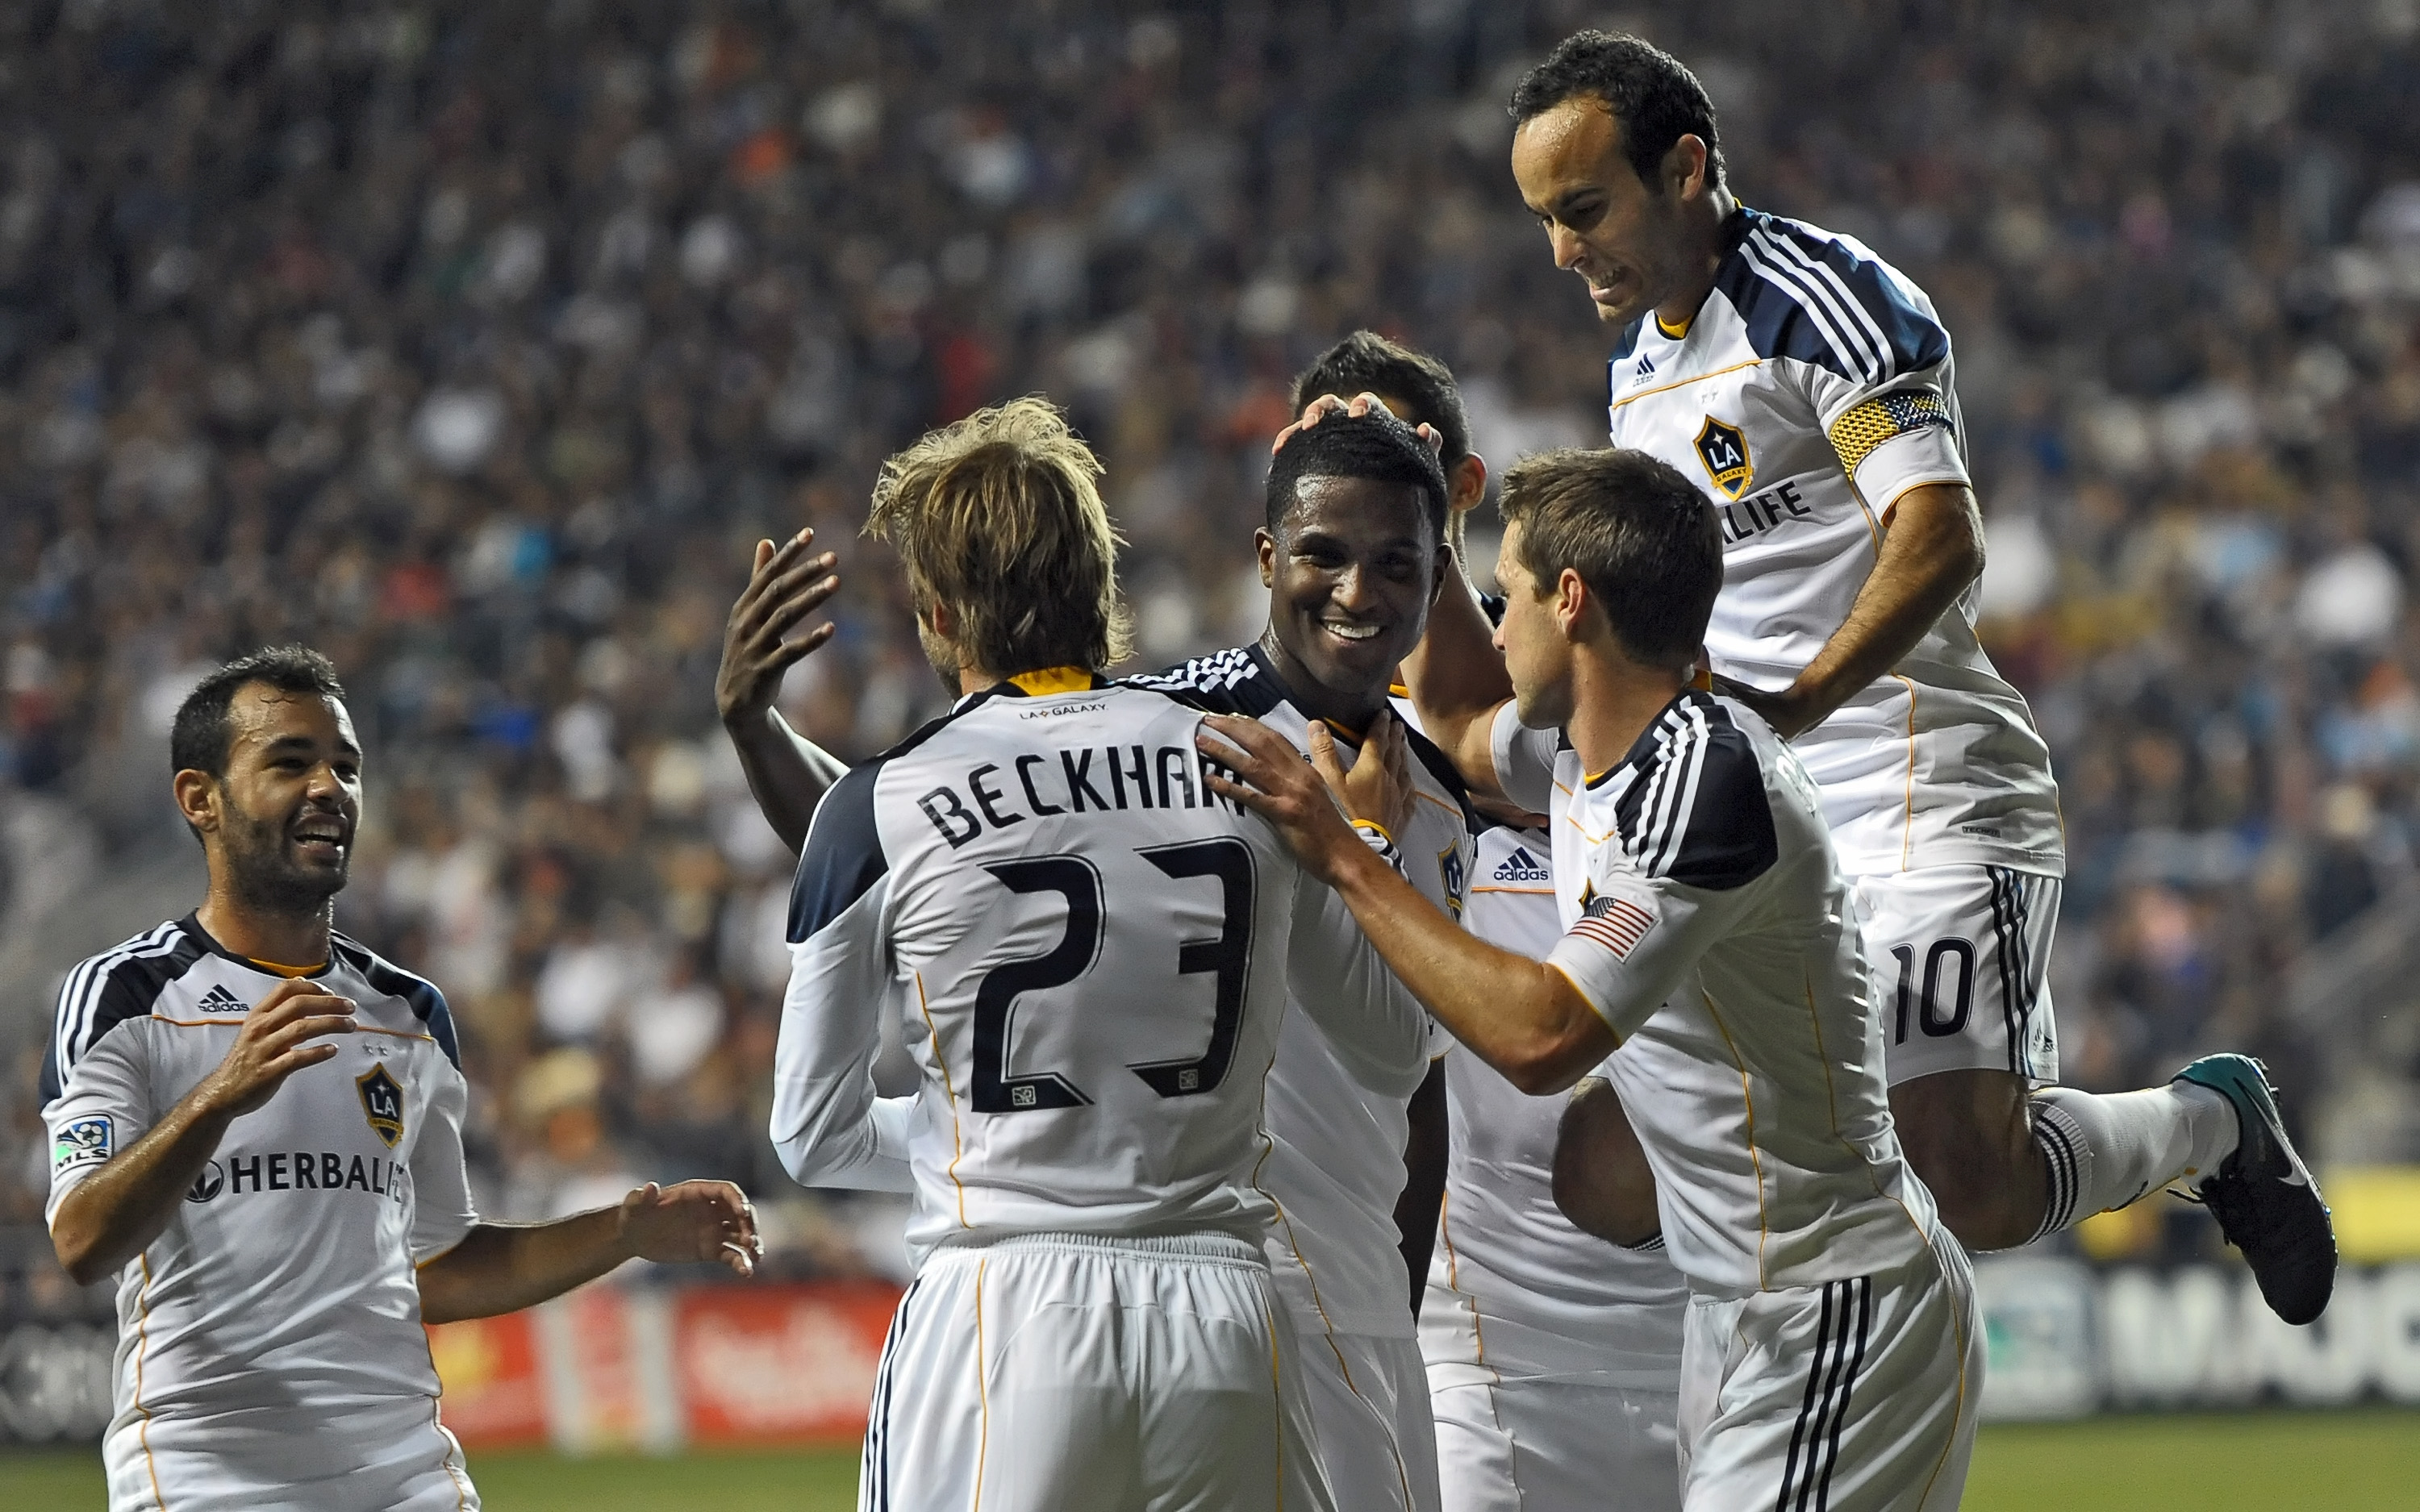 CHESTER, PA - OCTOBER 07: Edson Buddle #14 of the Los Angeles Galaxy celebrates with teammate  David Beckham #23 as Landon Donovan #10 jumps onto the group during the game against the Philadelphia Union at PPL Park on October 7, 2010  in Chester, Pennsylv